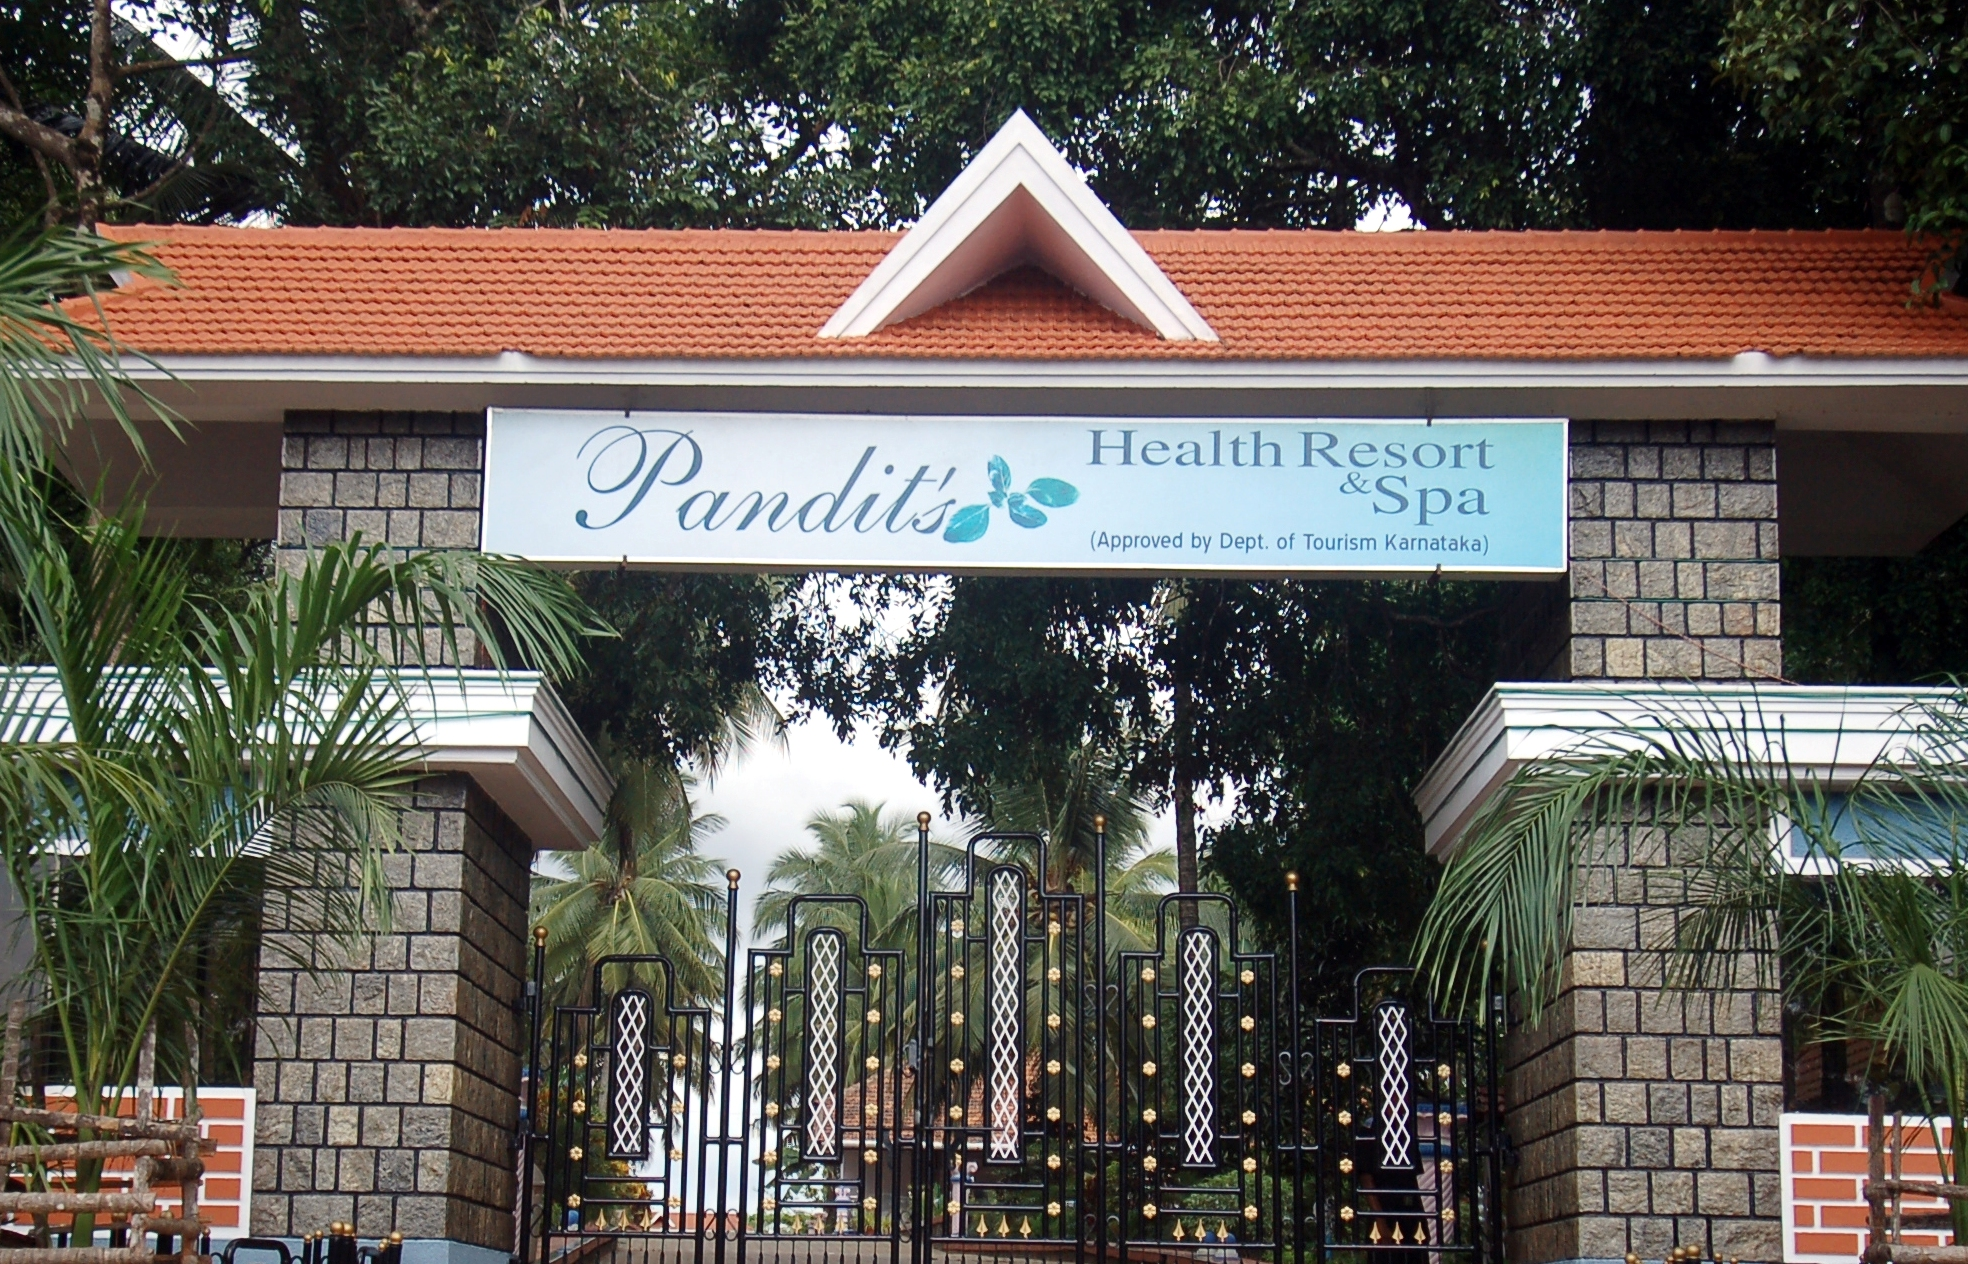 Ias Hotels Resorts Mangalore Pandits Health Resort And Spa Hotel